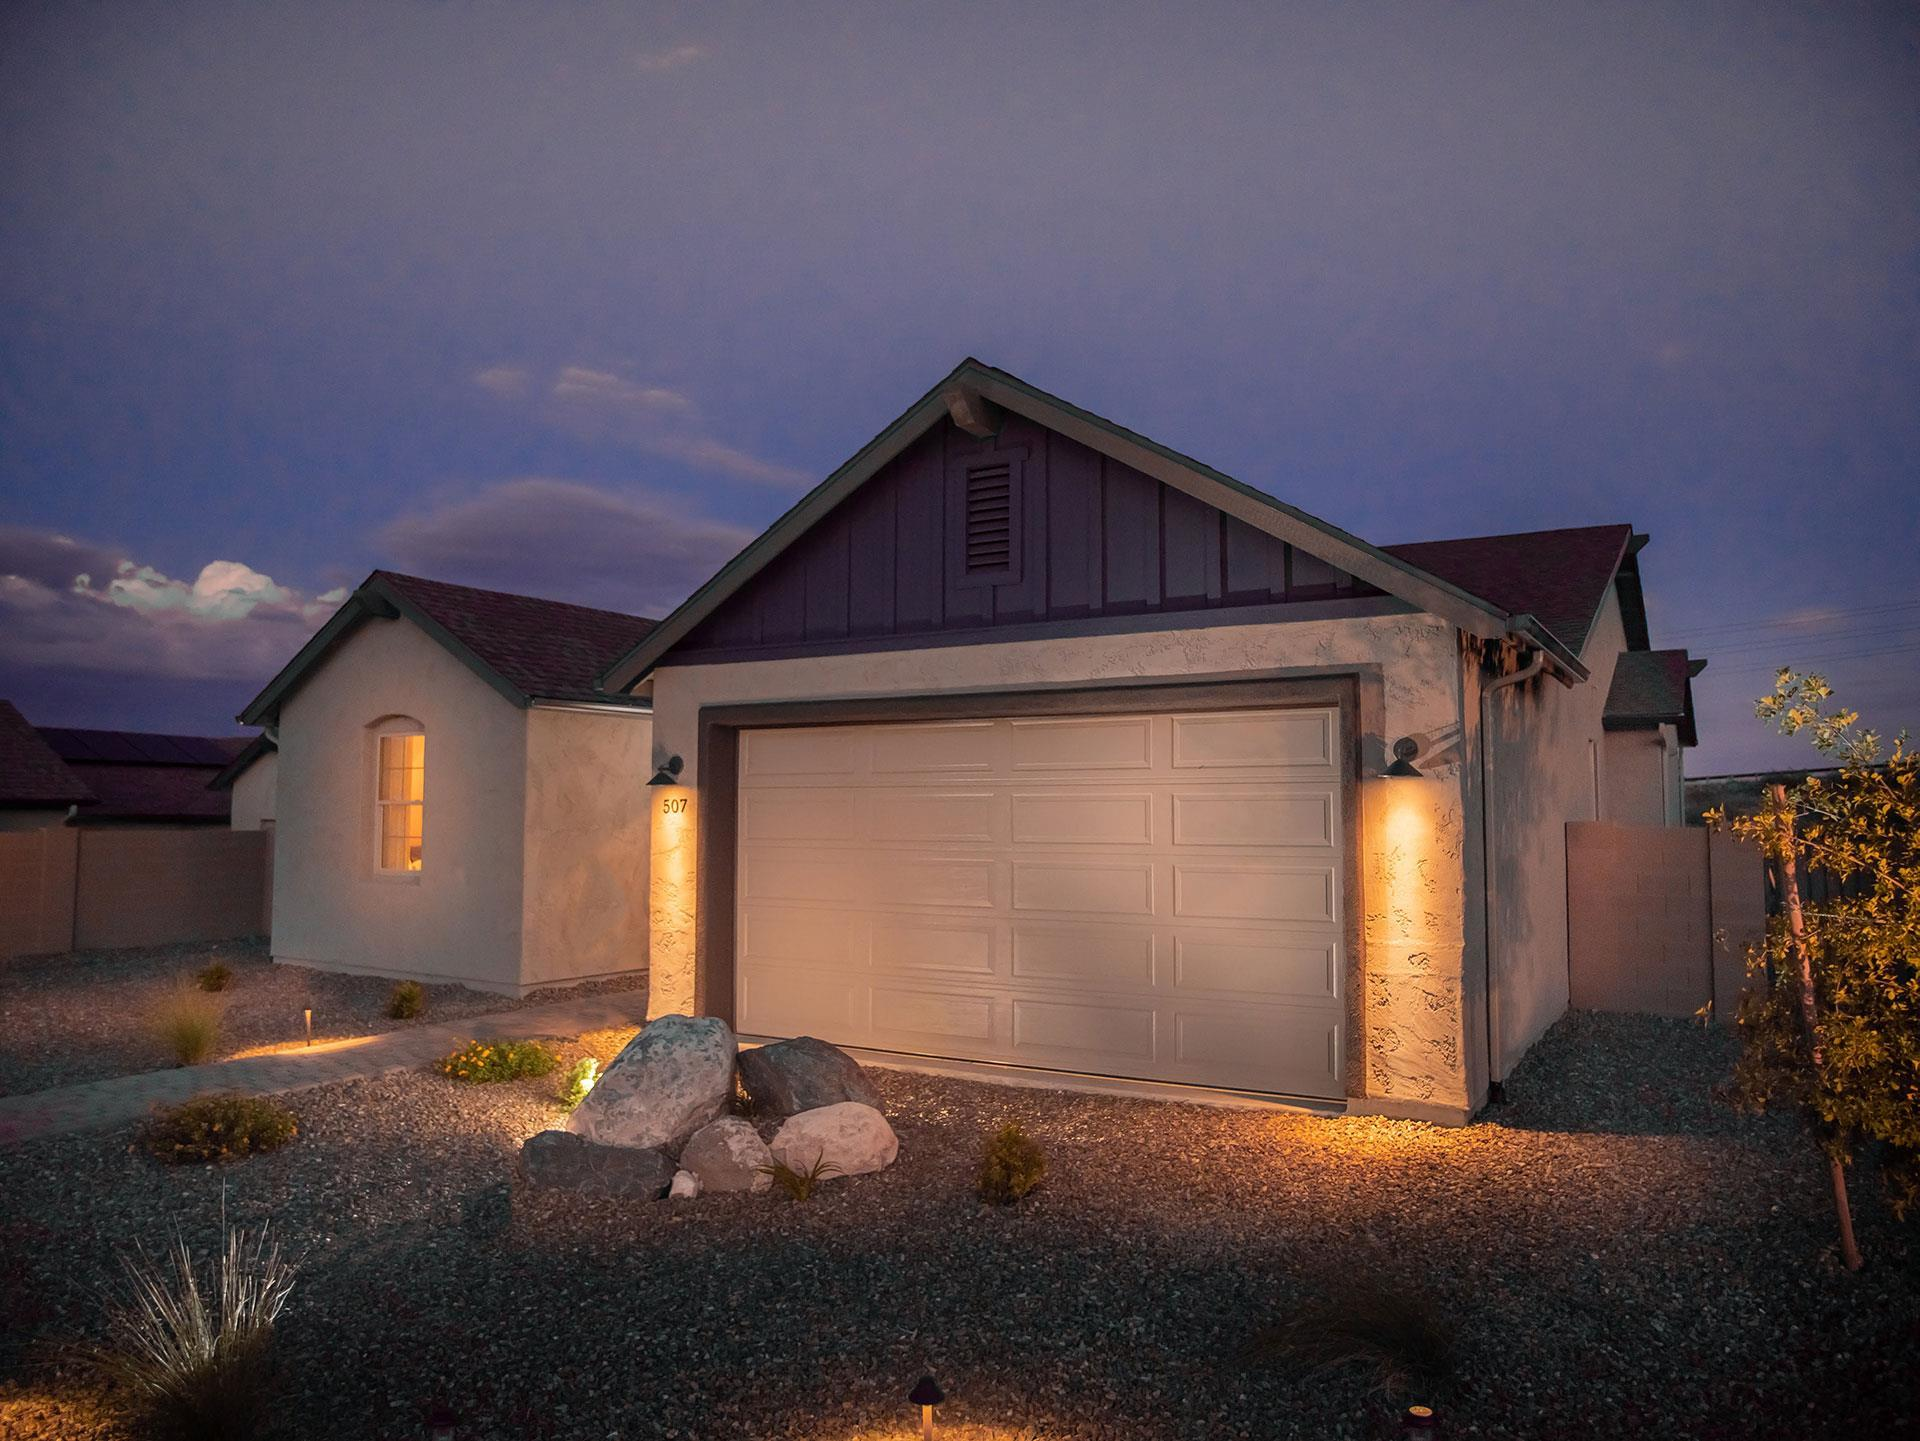 'The Traditions at Mountain Gate' by Mandalay Homes - Prescott in Prescott